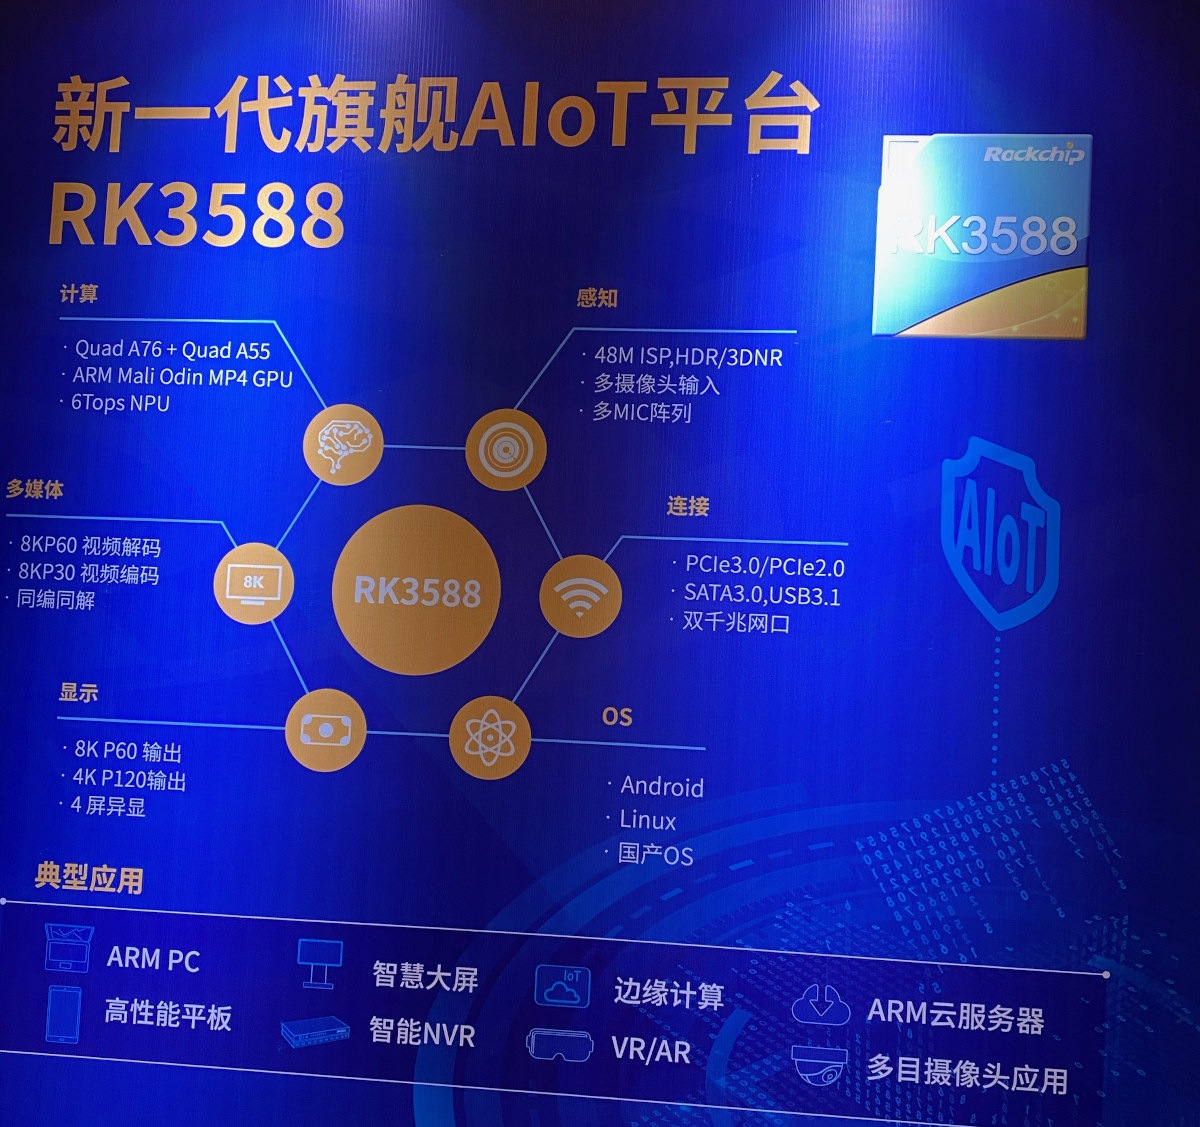 Rockchip RK3588 specifications